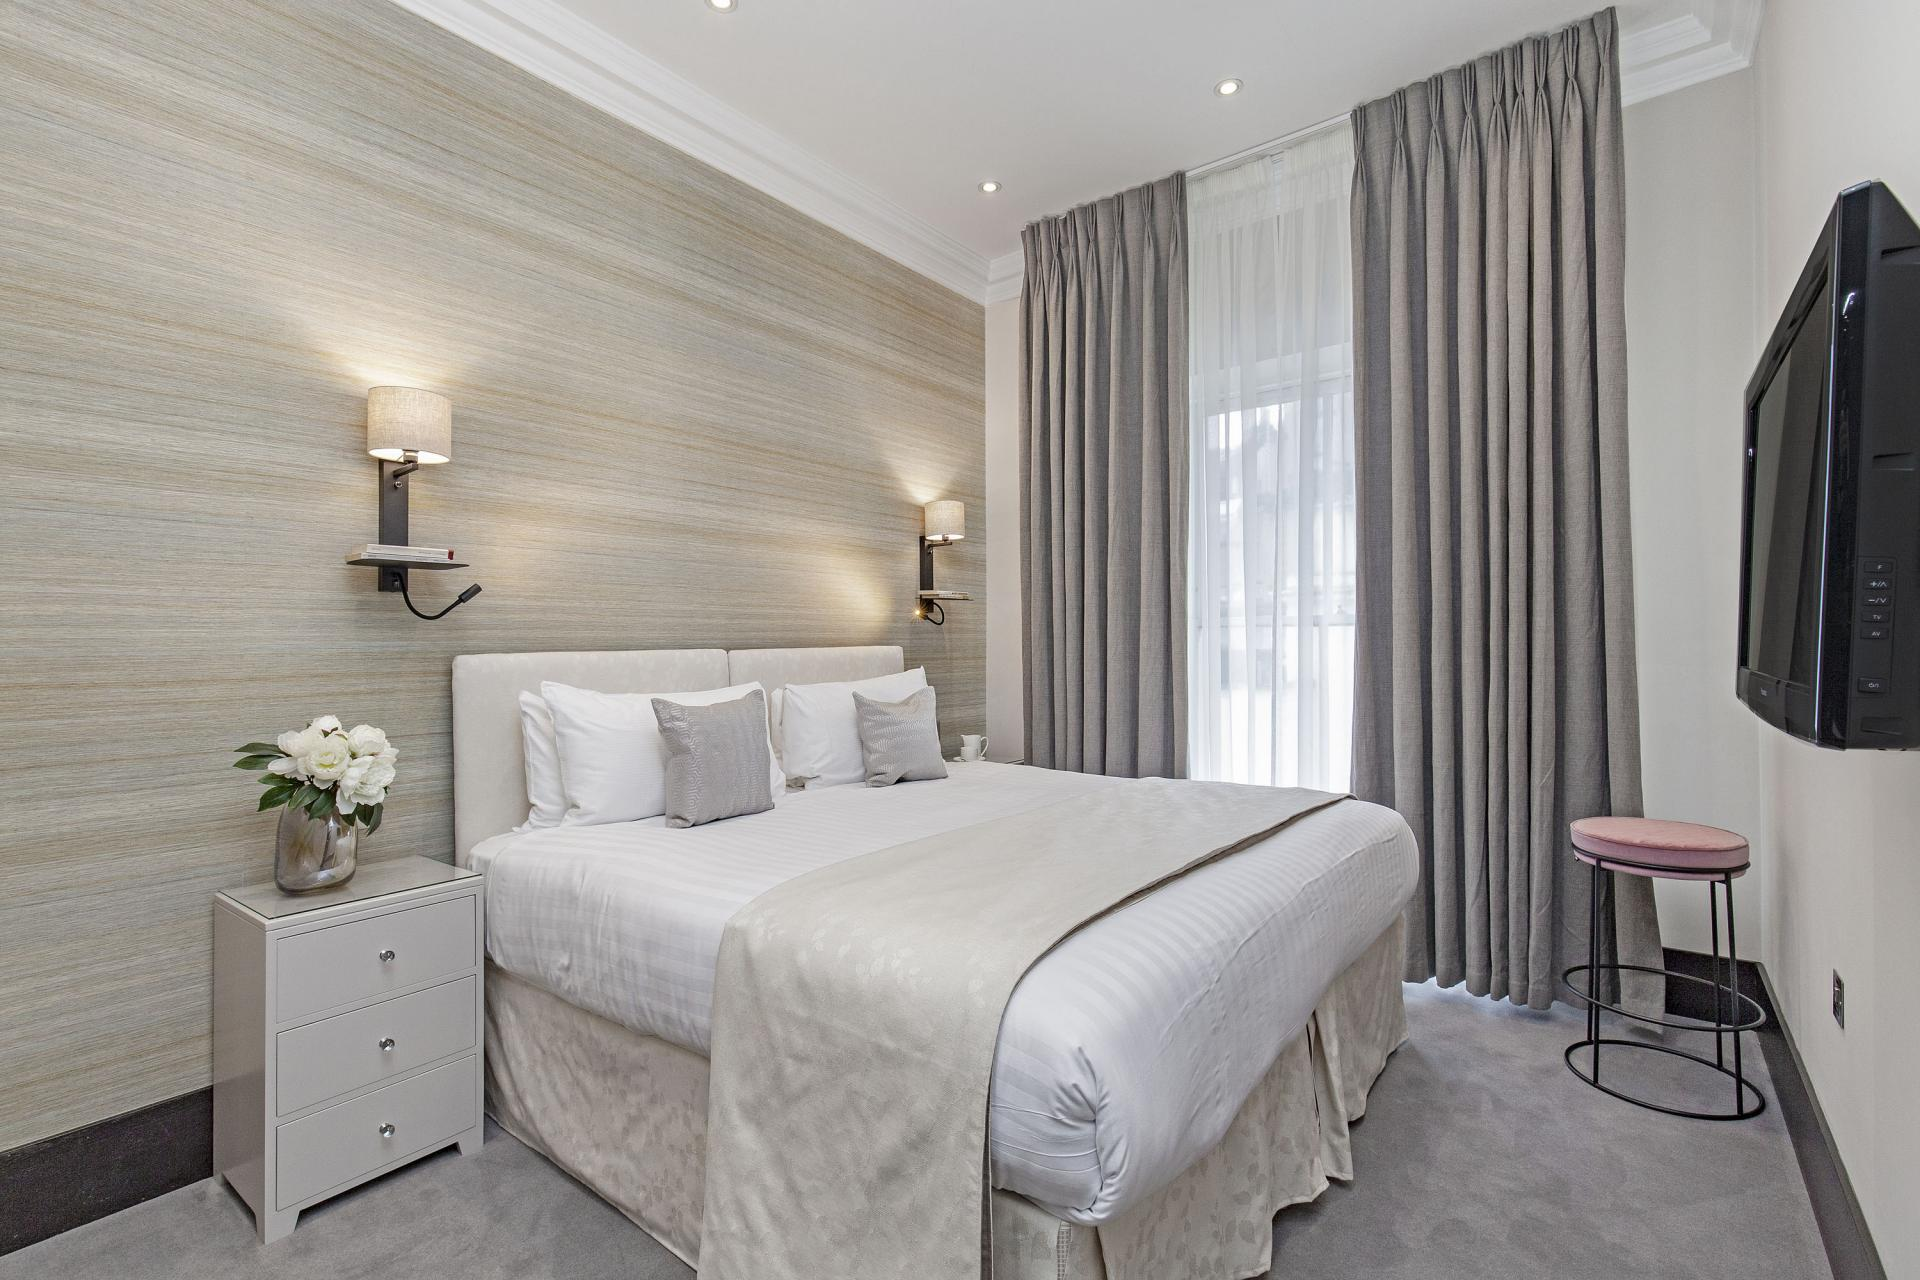 Elegant bed at130 Queens Gate Apartments, South Kensington, London - Citybase Apartments